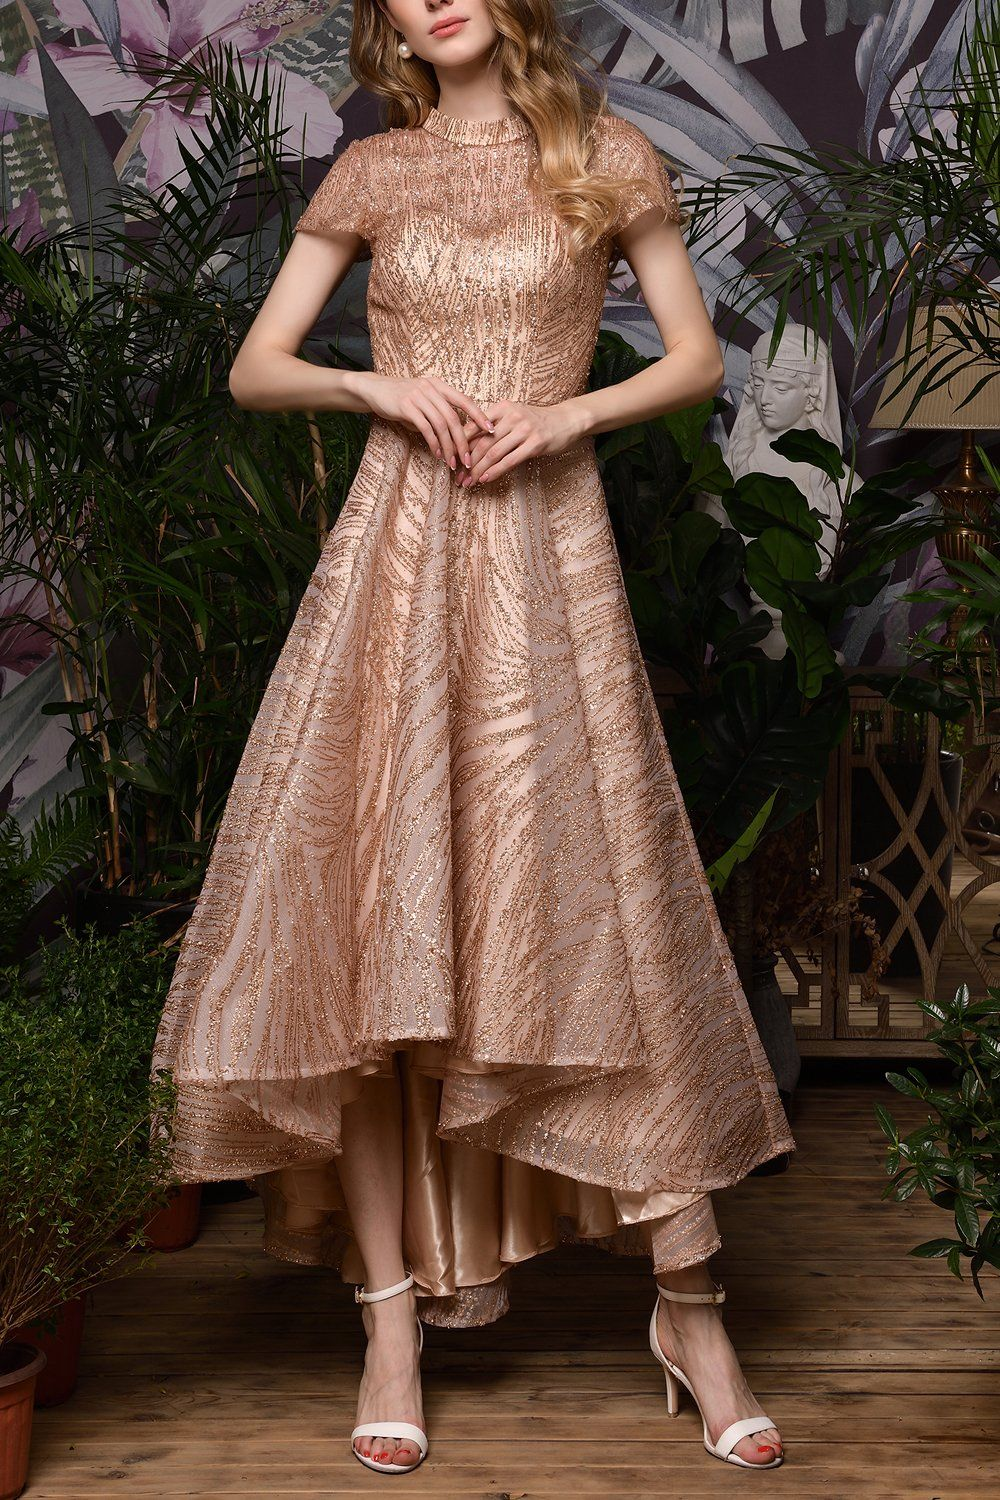 Rose Gold Sequined Prom Party Dress With Sleeves In 2021 Evening Gowns With Sleeves Tea Length Prom Dress Party Dresses With Sleeves [ 1500 x 1000 Pixel ]